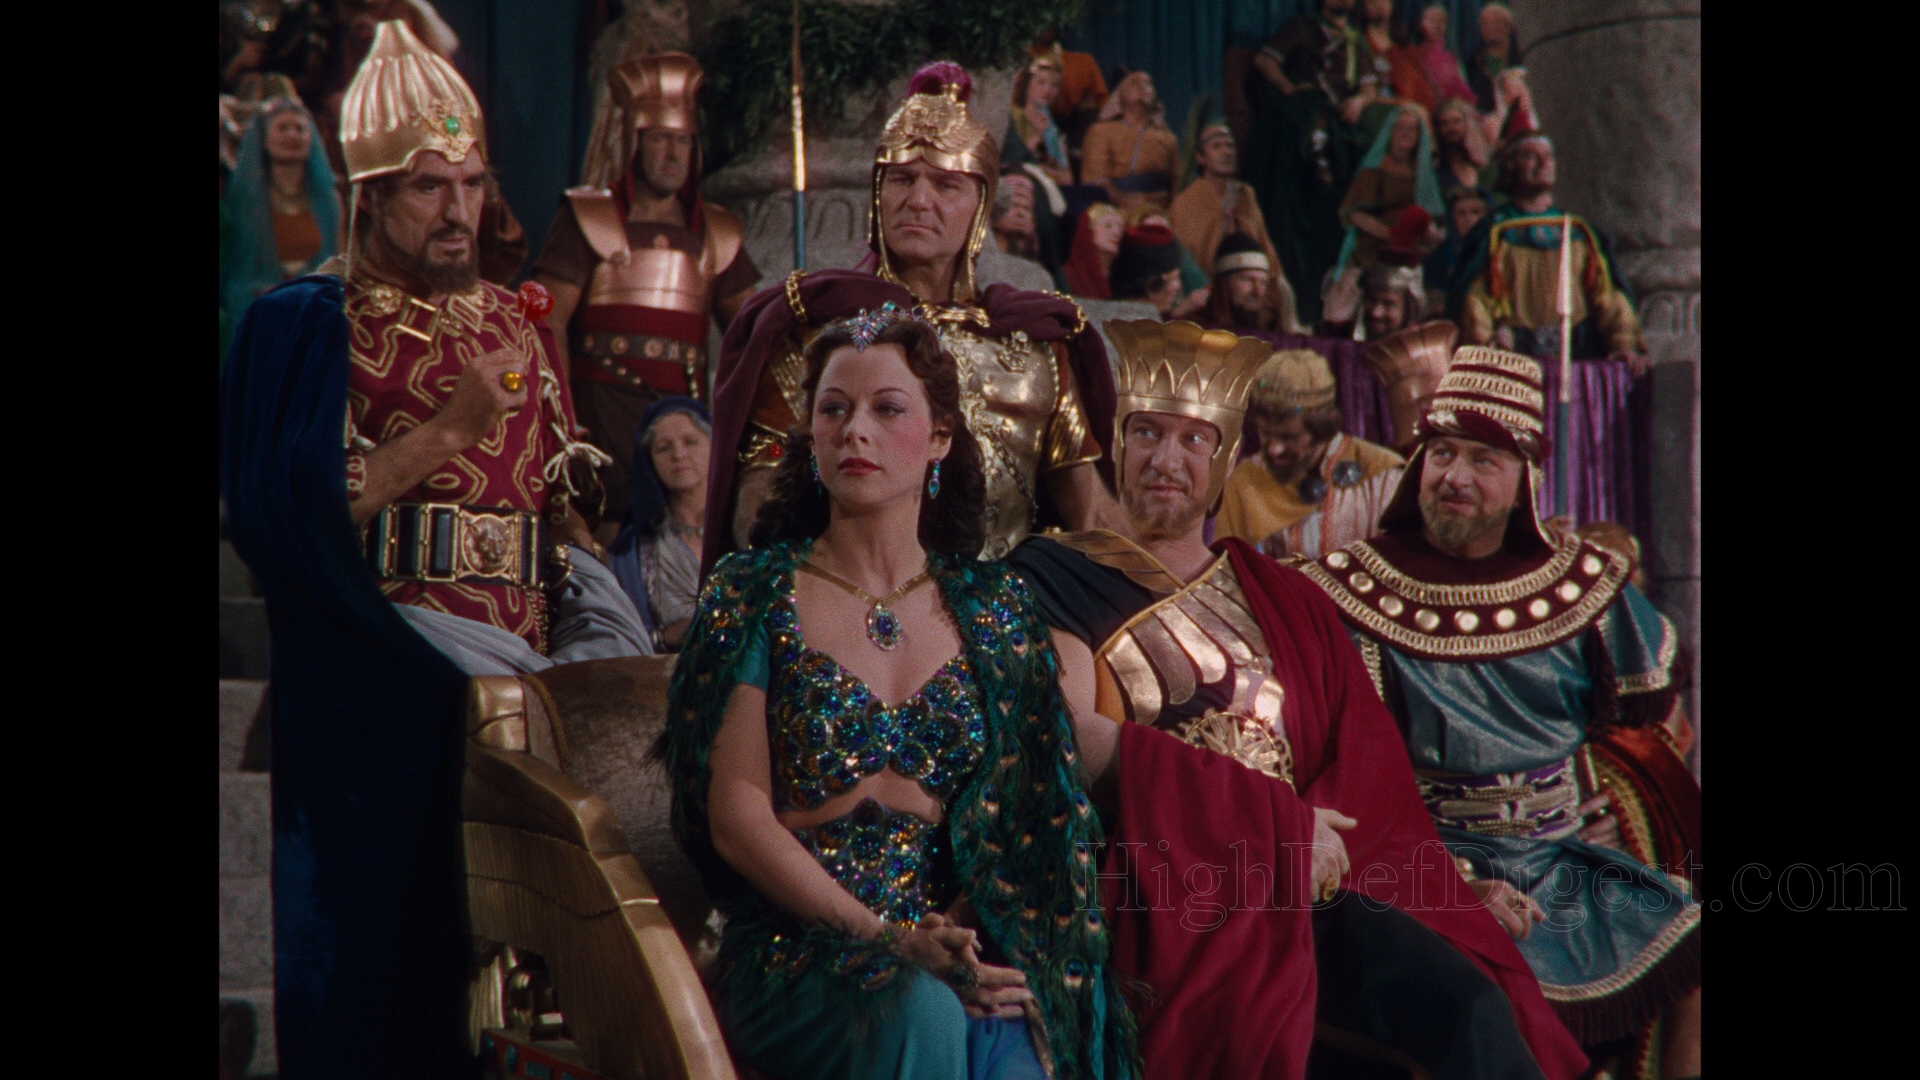 samson and delilah film Watch online full movie samson and delilah (1949) for free when strongman samson rejects the love of the beautiful philistine woman delilah, she seeks vengeance stream movies.